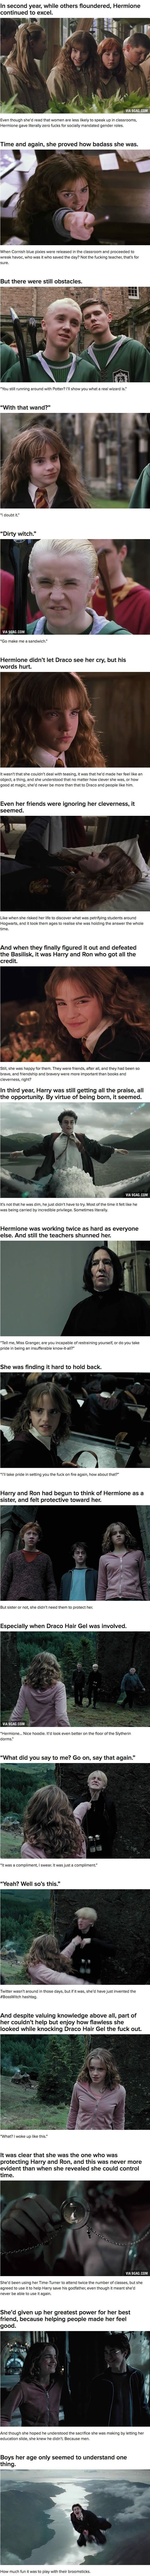 """If Hermione Were The Main Character In """"Harry Potter"""" (Part 2 Of 5)"""